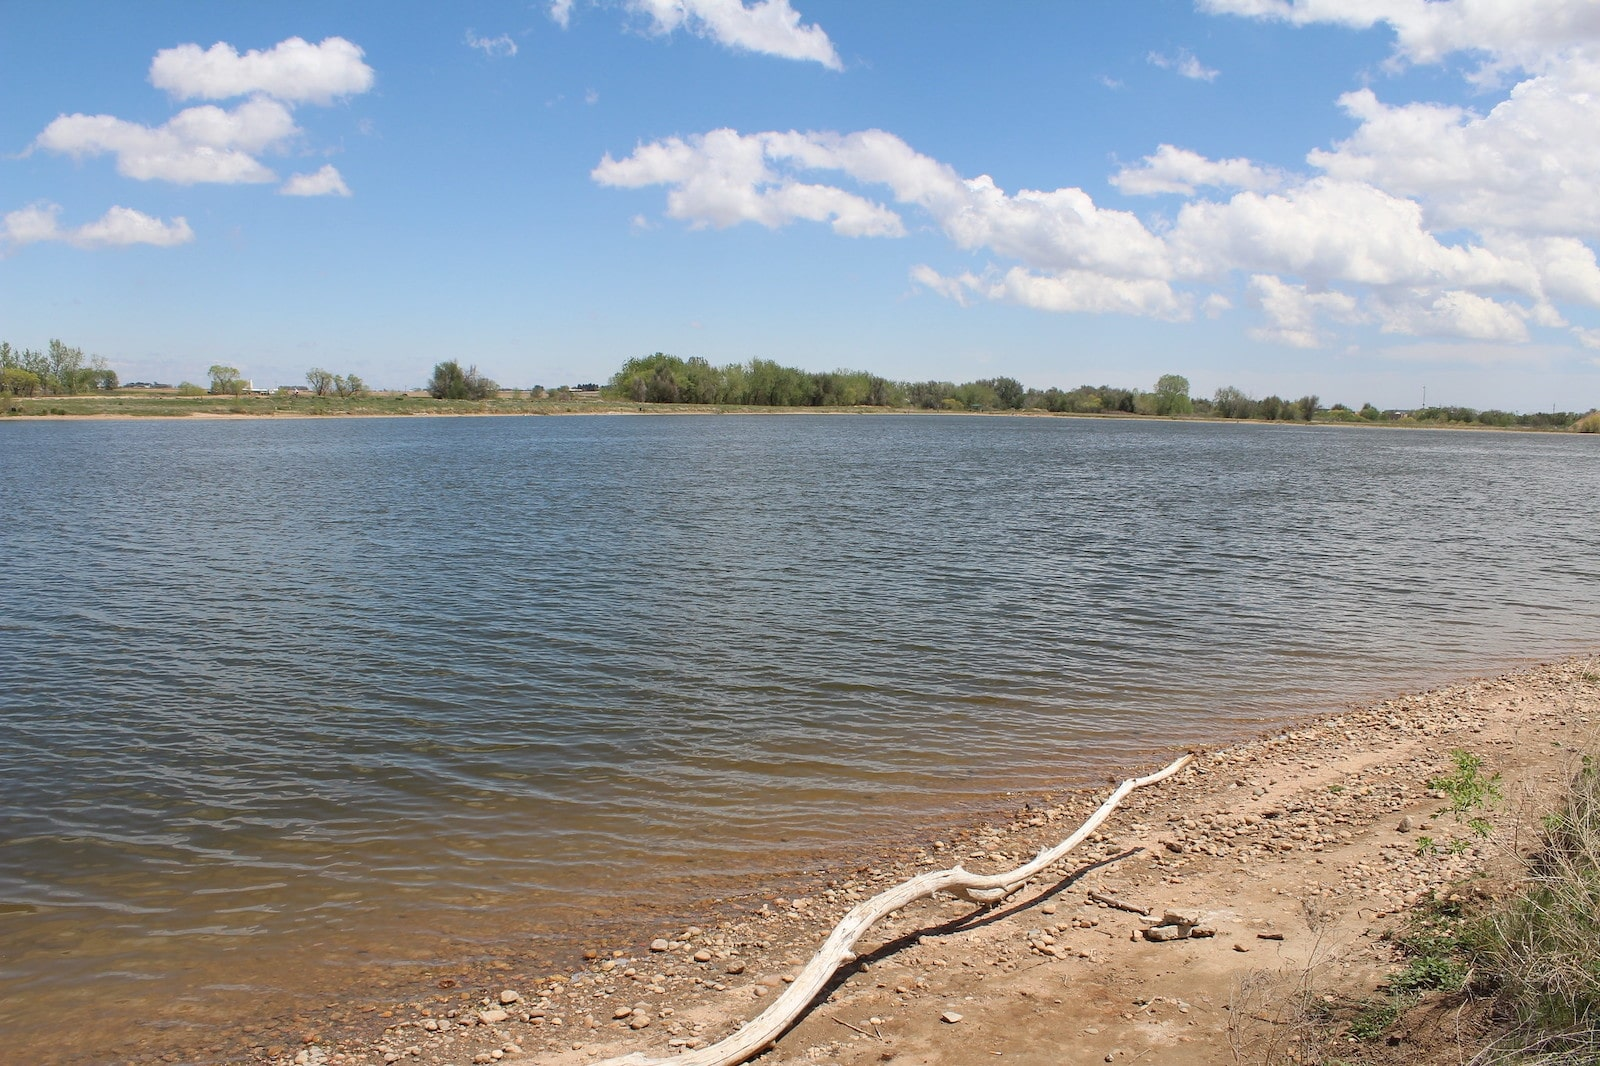 Image of Poudre Ponds in the City of Greeley, Colorado